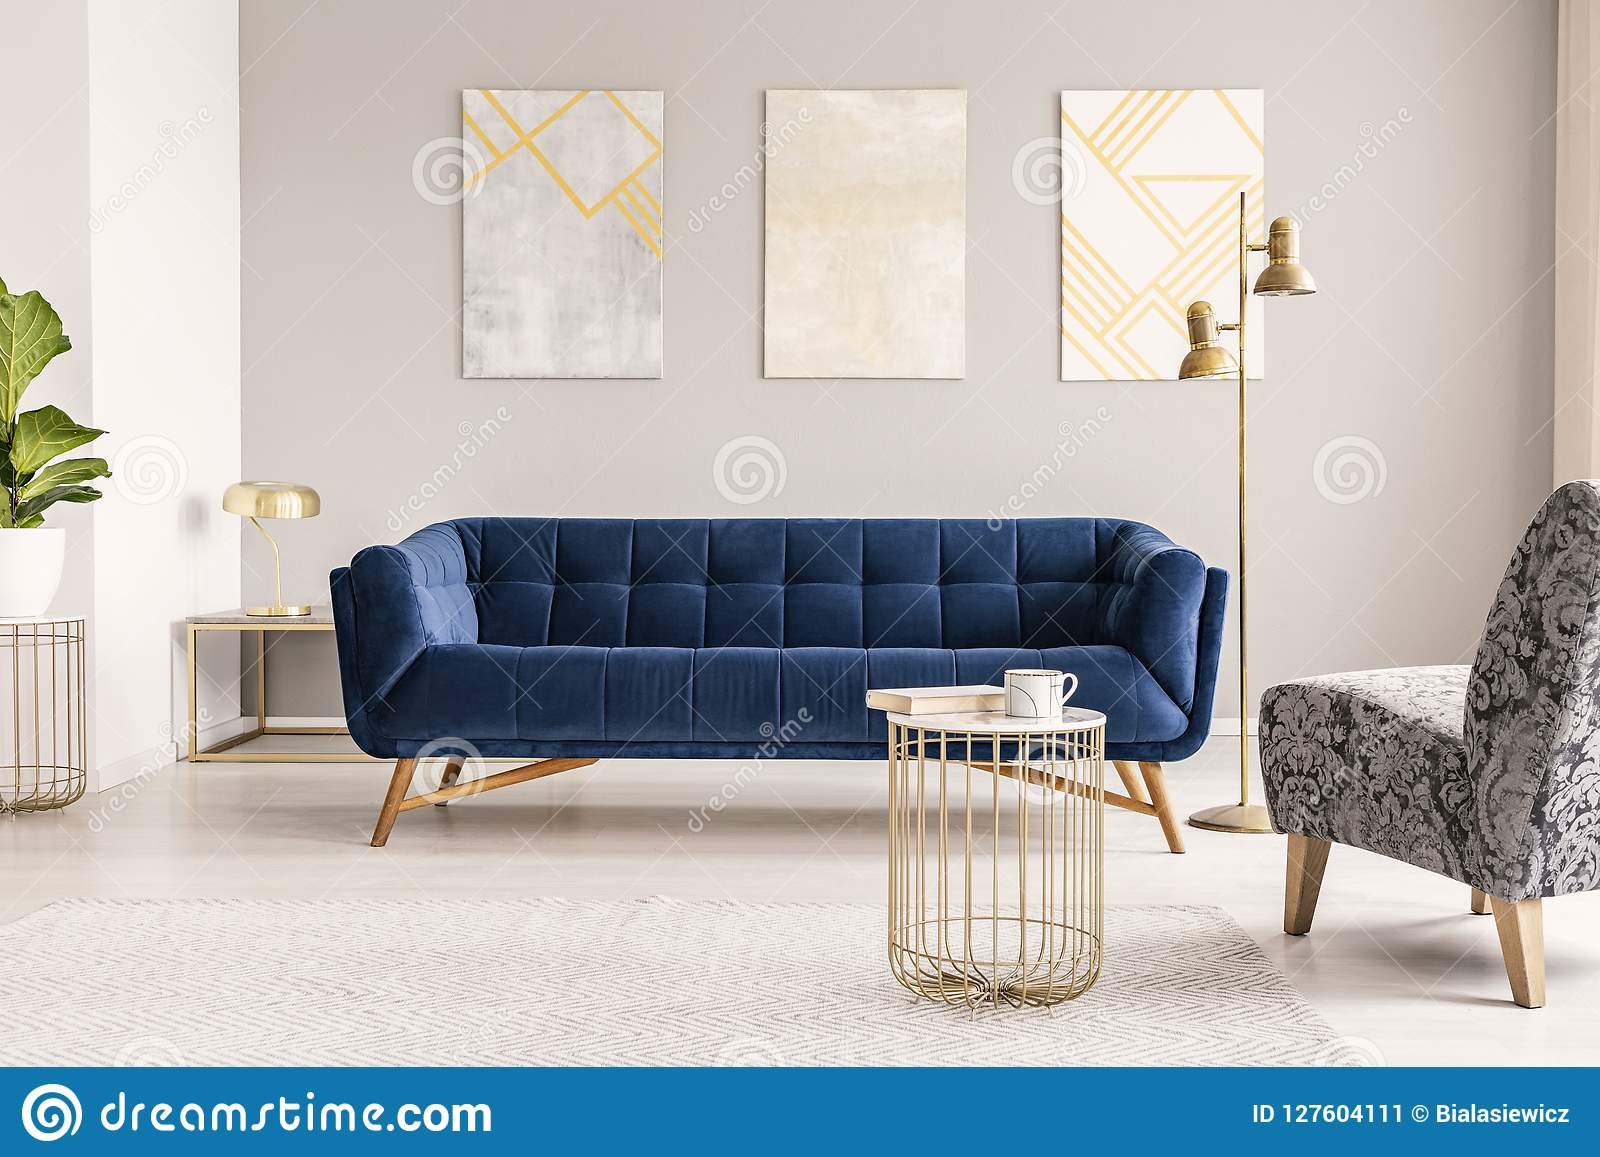 A dark blue velvet settee against a gray wall with modern paintings in an empty living room interior. Real photo.